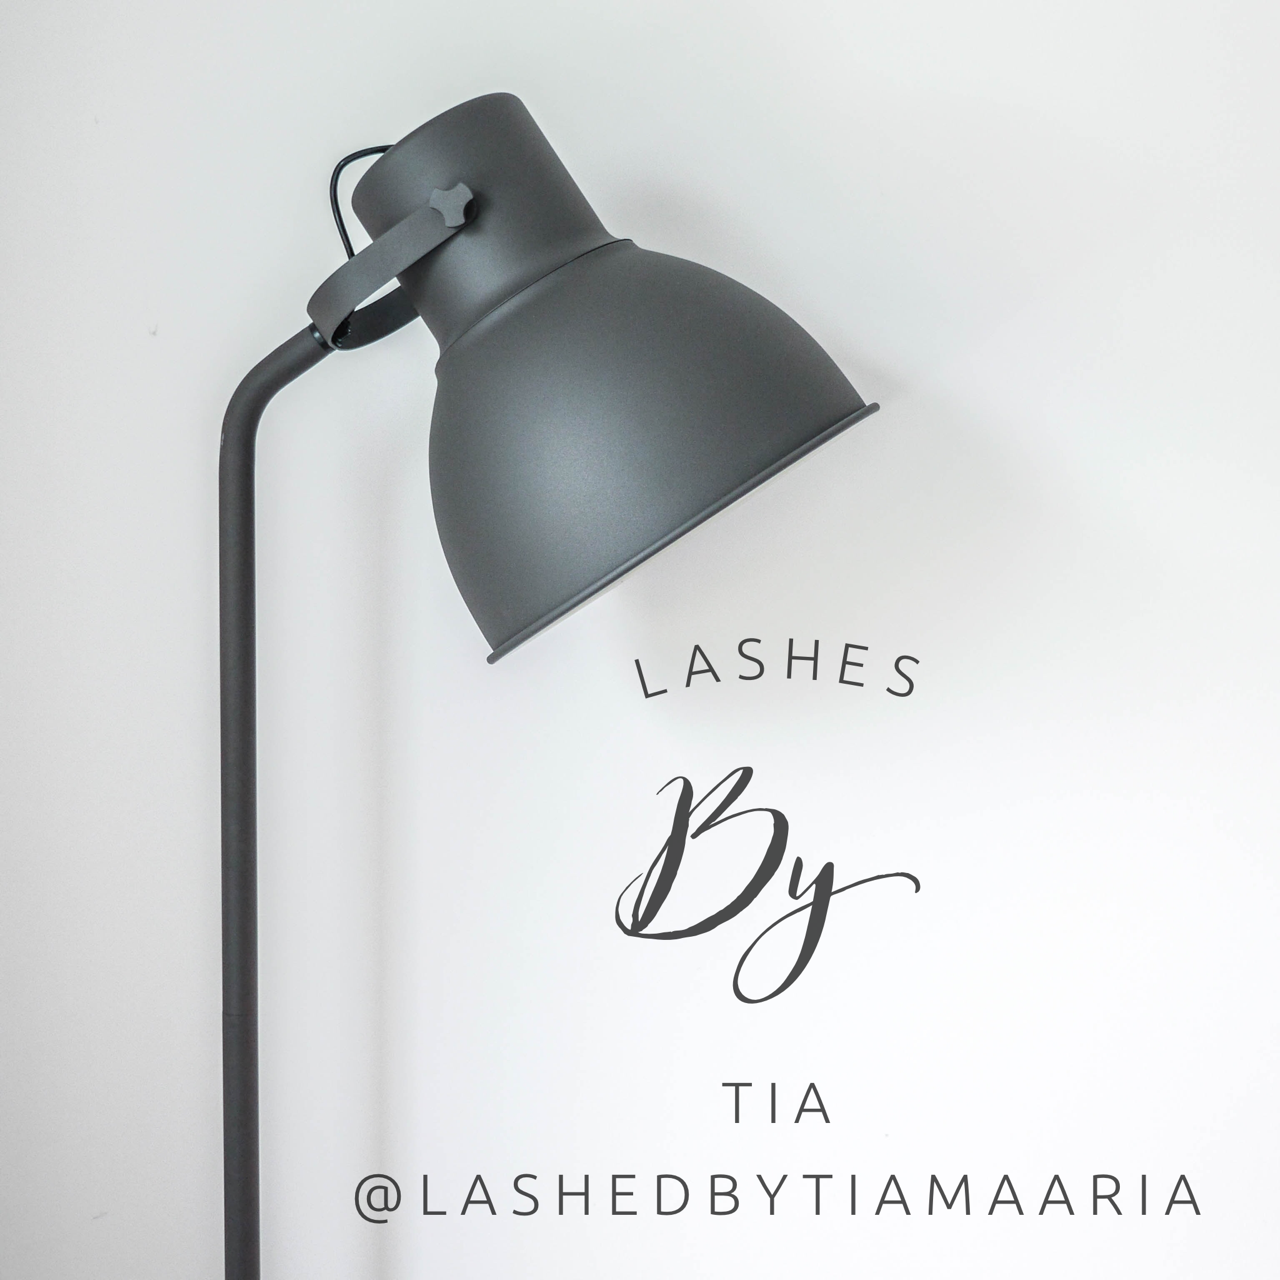 LASHES BY TIA MARIAA - I have recently taken my volume course with Jessica. She was amazing.Made sure I understood the theory, the products, how it works and much more. She's very down to earth and easy to talk to/ ask questions without feeling stupid. Not only does she care about your success she cares about your body and health witch is a big factor of this line of work. I absolutely love this product.It's easy, quick drying and works with your hands. Light weight and creates a beautiful full set. I highly recommend ololash for all your lash needs!-Tia Mariaa